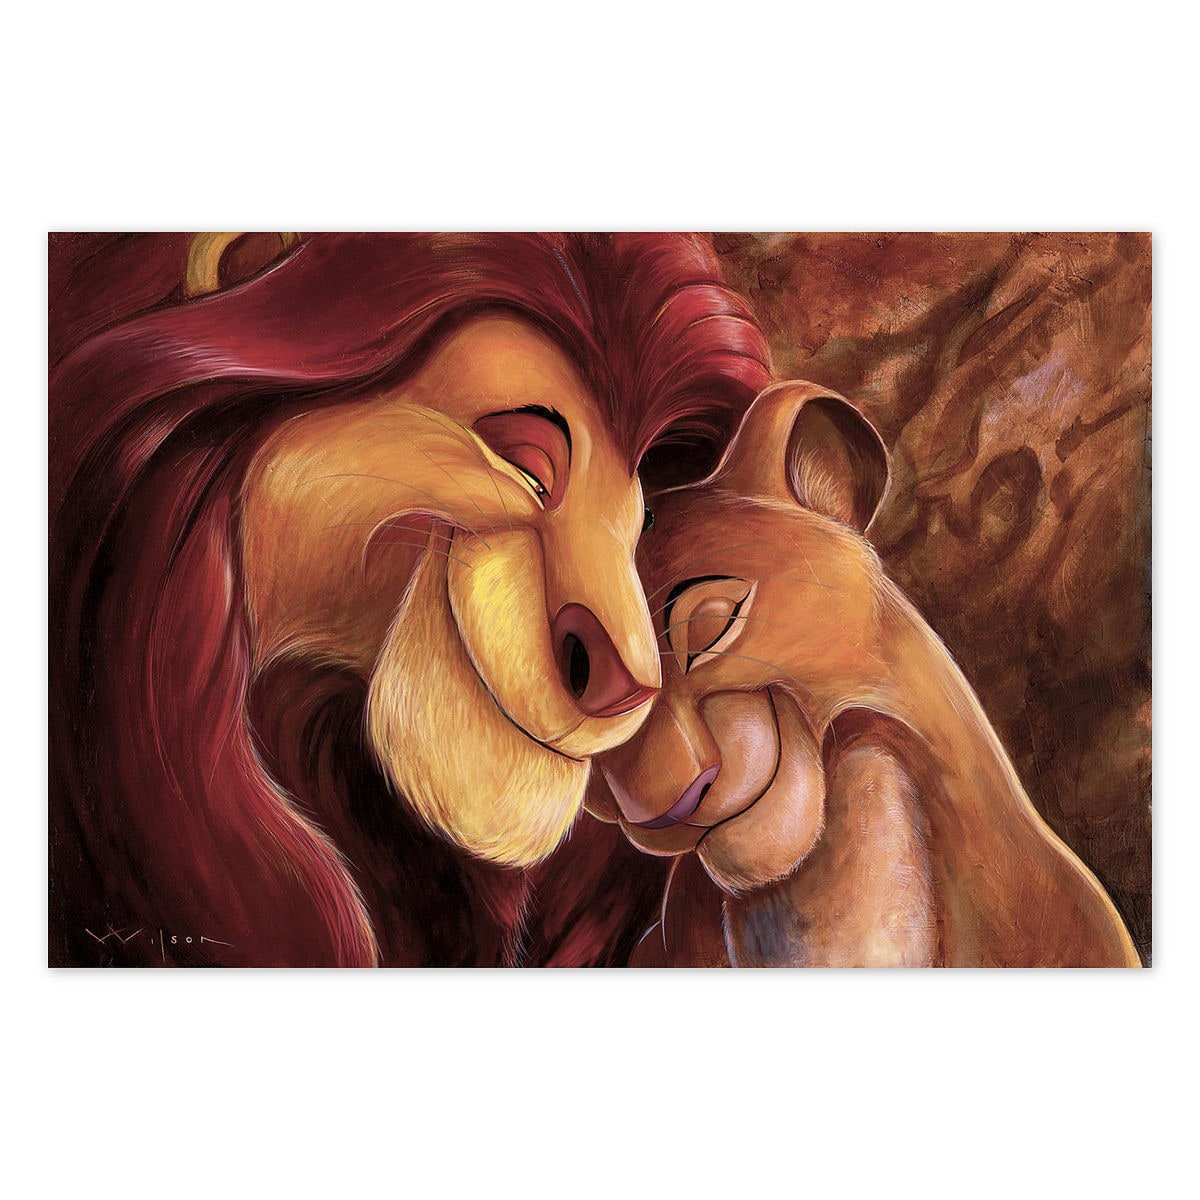 the lion king pride love everlasting giclée by darren wilson